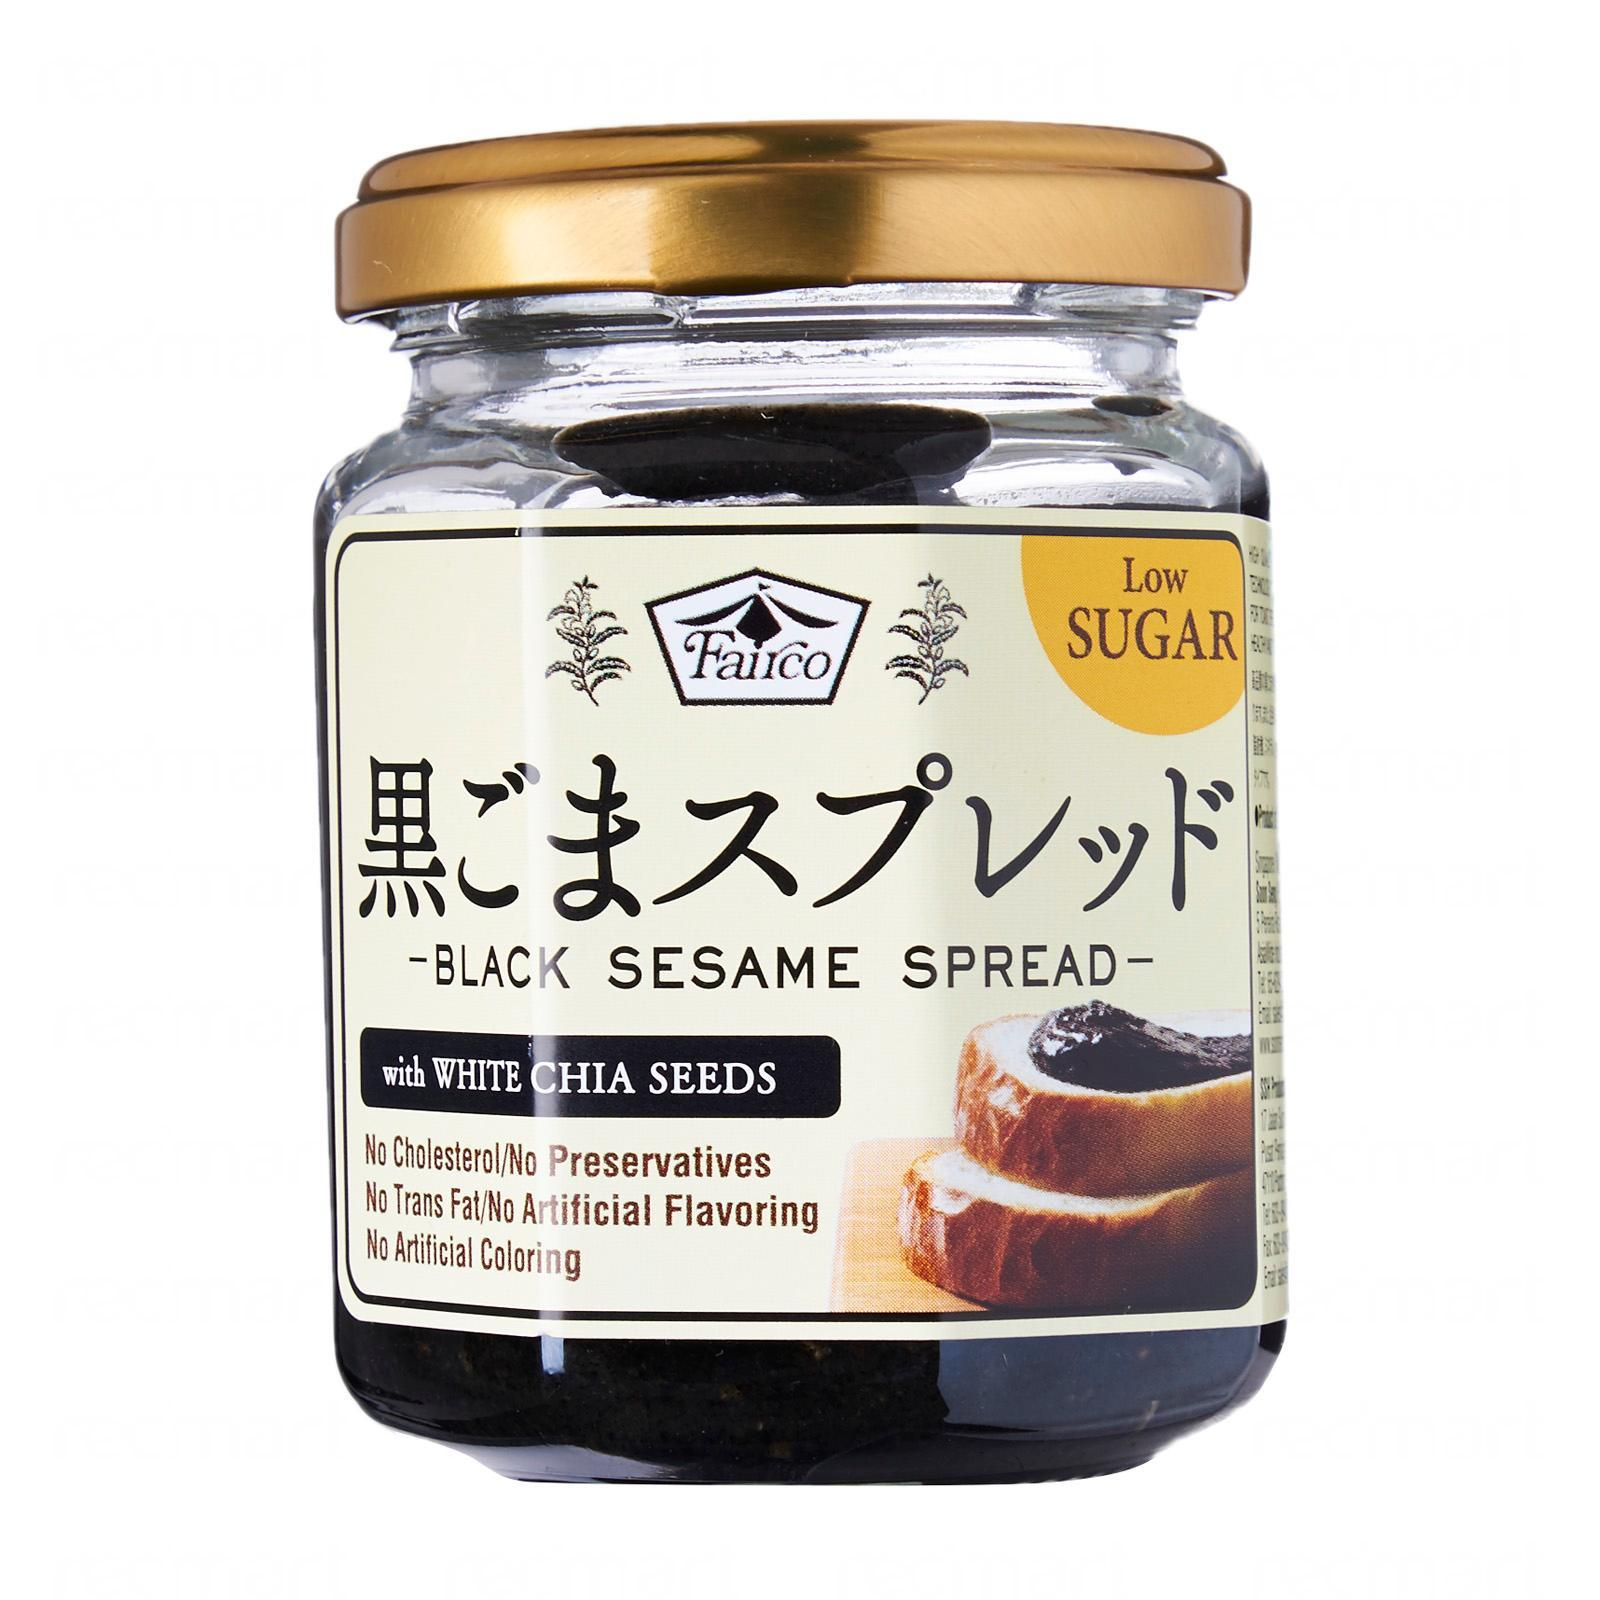 Fairco Premium Black Sesame Spread (W/White Chia Seeds And Low Sugar)